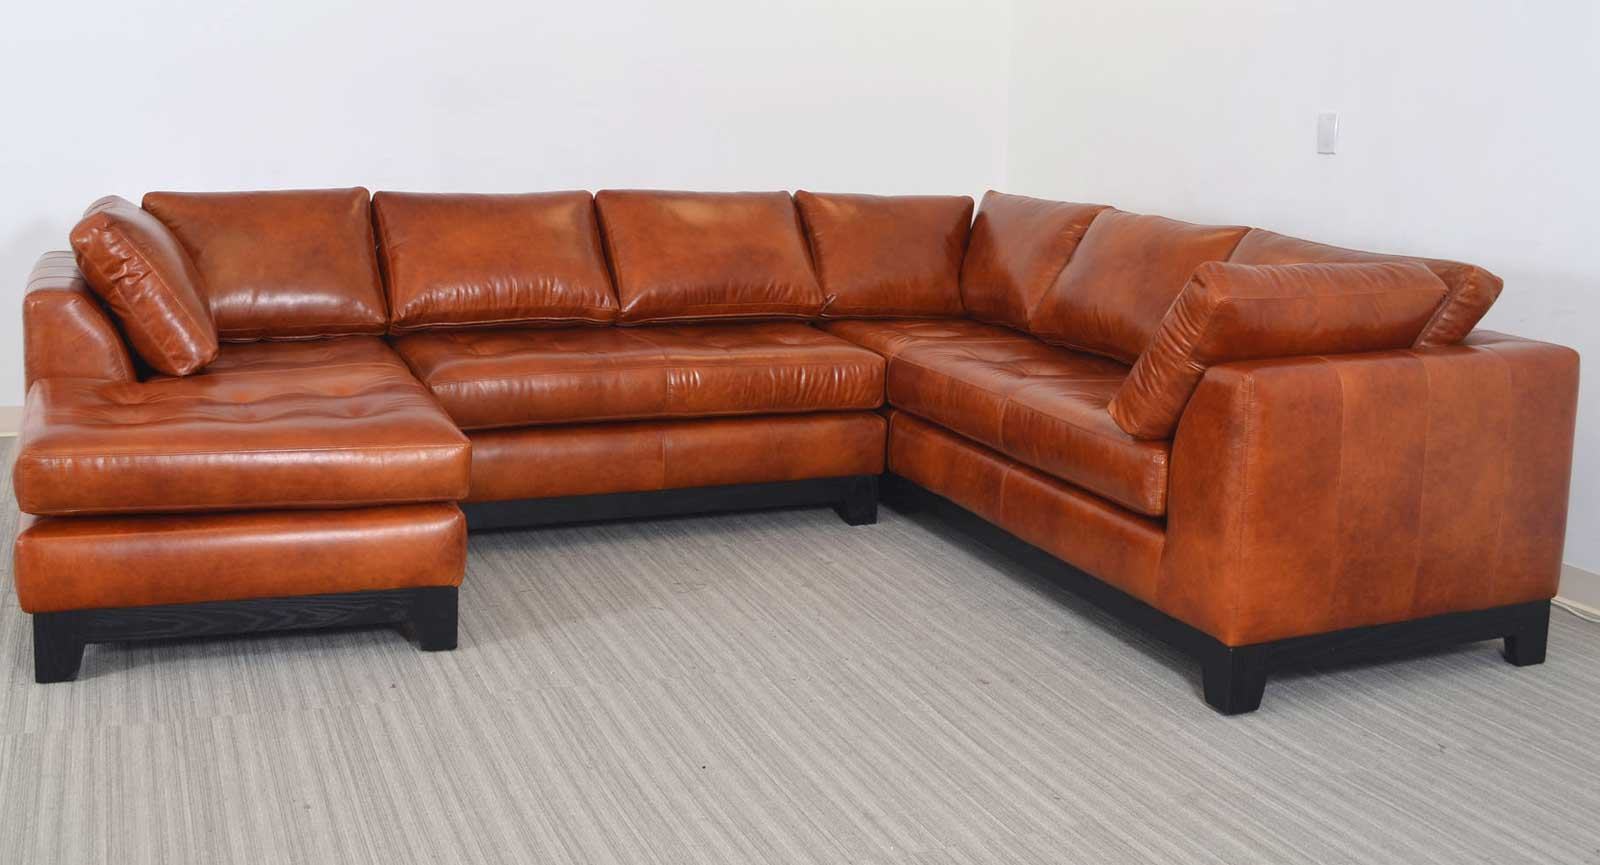 Corner Side Chaise Armless Loveseat Sofa